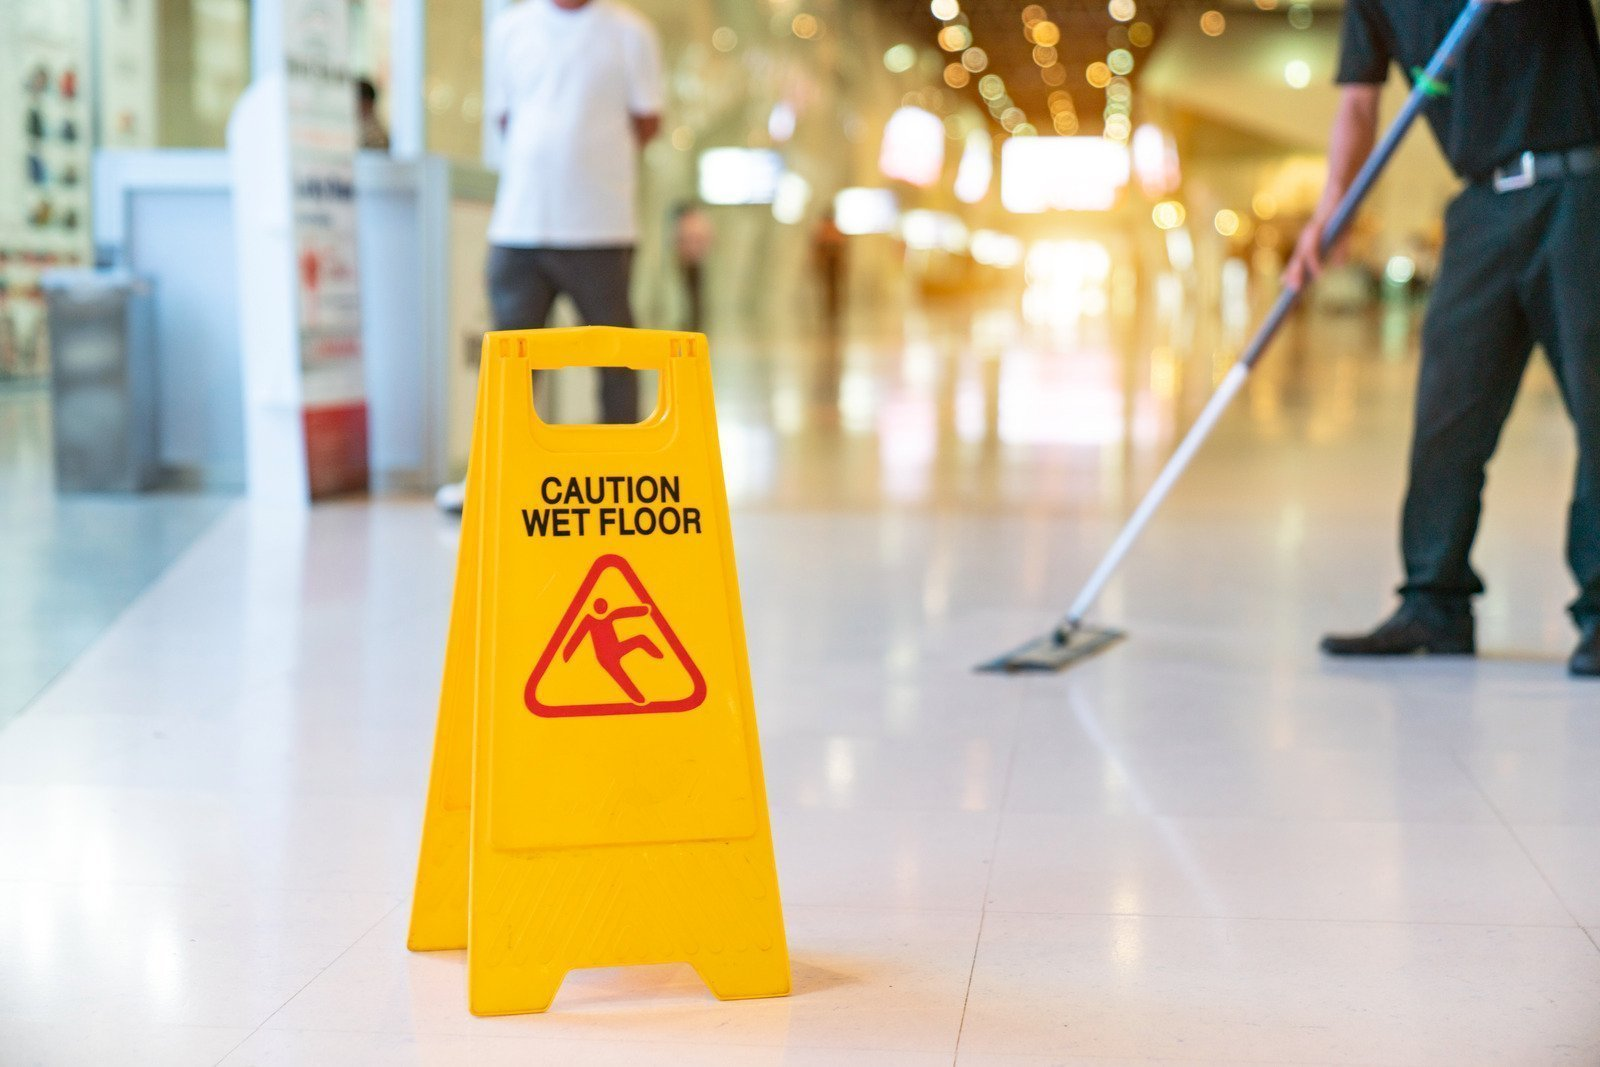 Are You Shopping For Managed Services The Same Way You Shop For Janitorial Services?